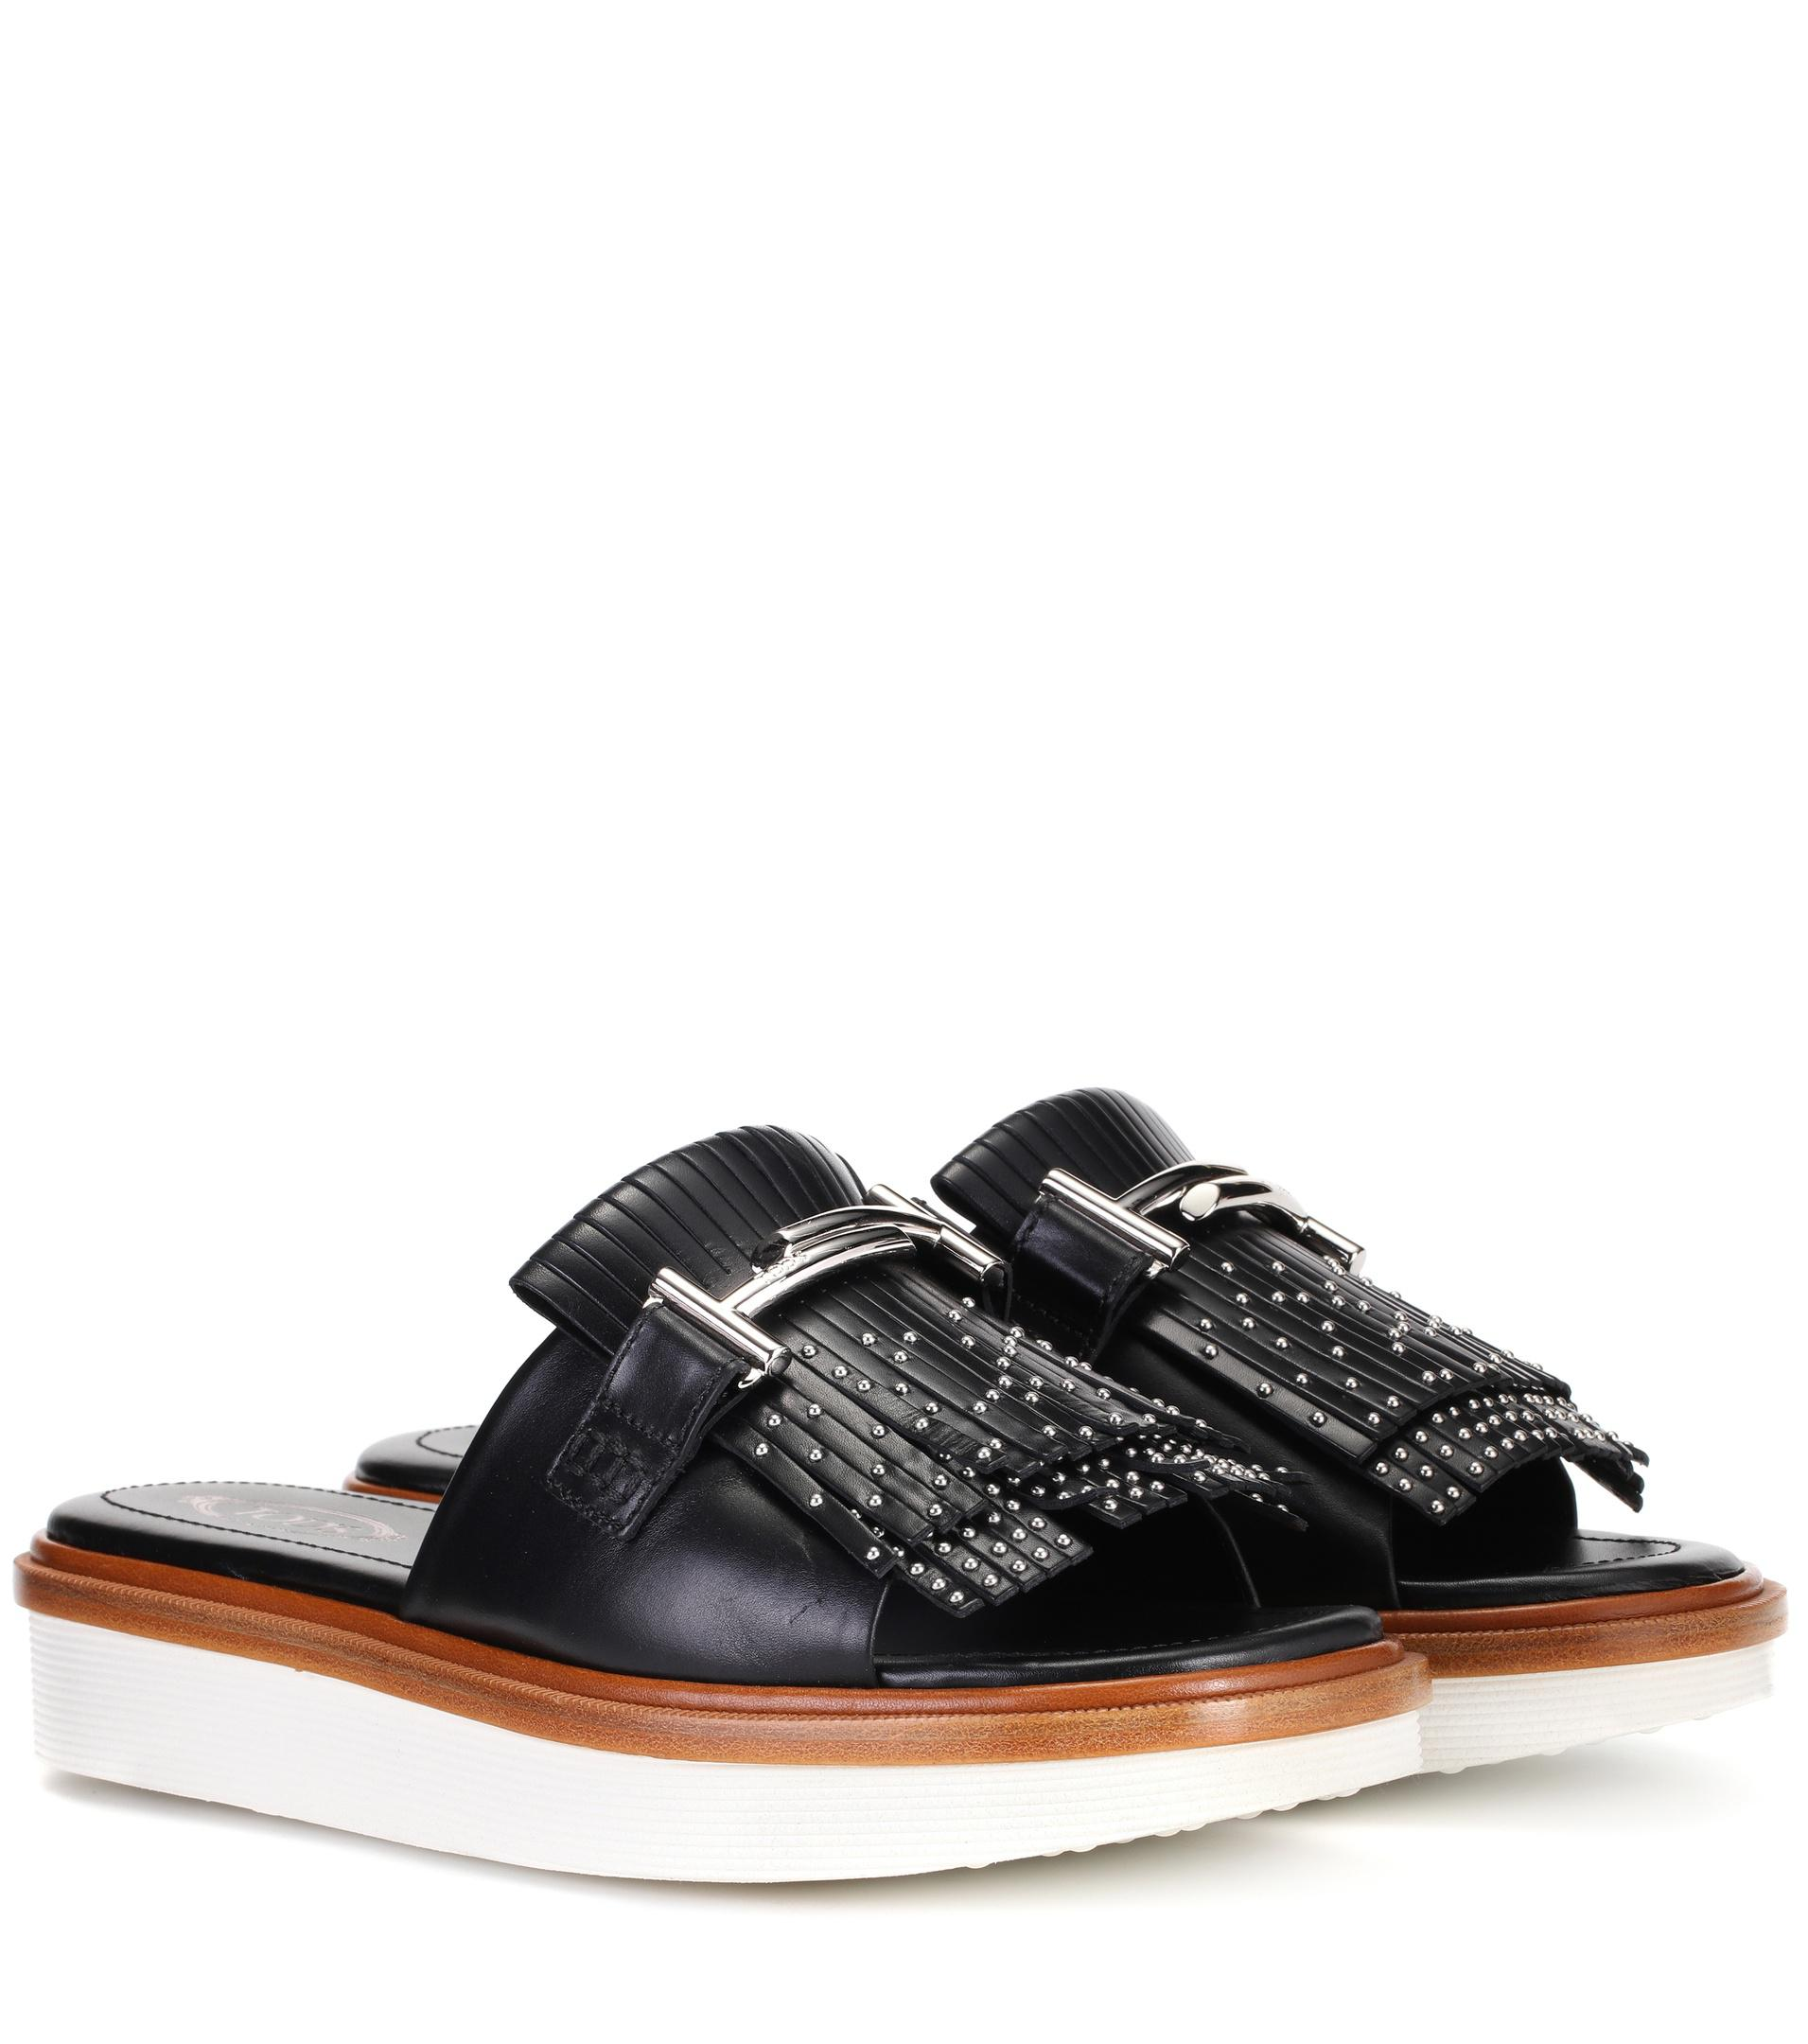 Tod's Double T leather slides nsV11a83